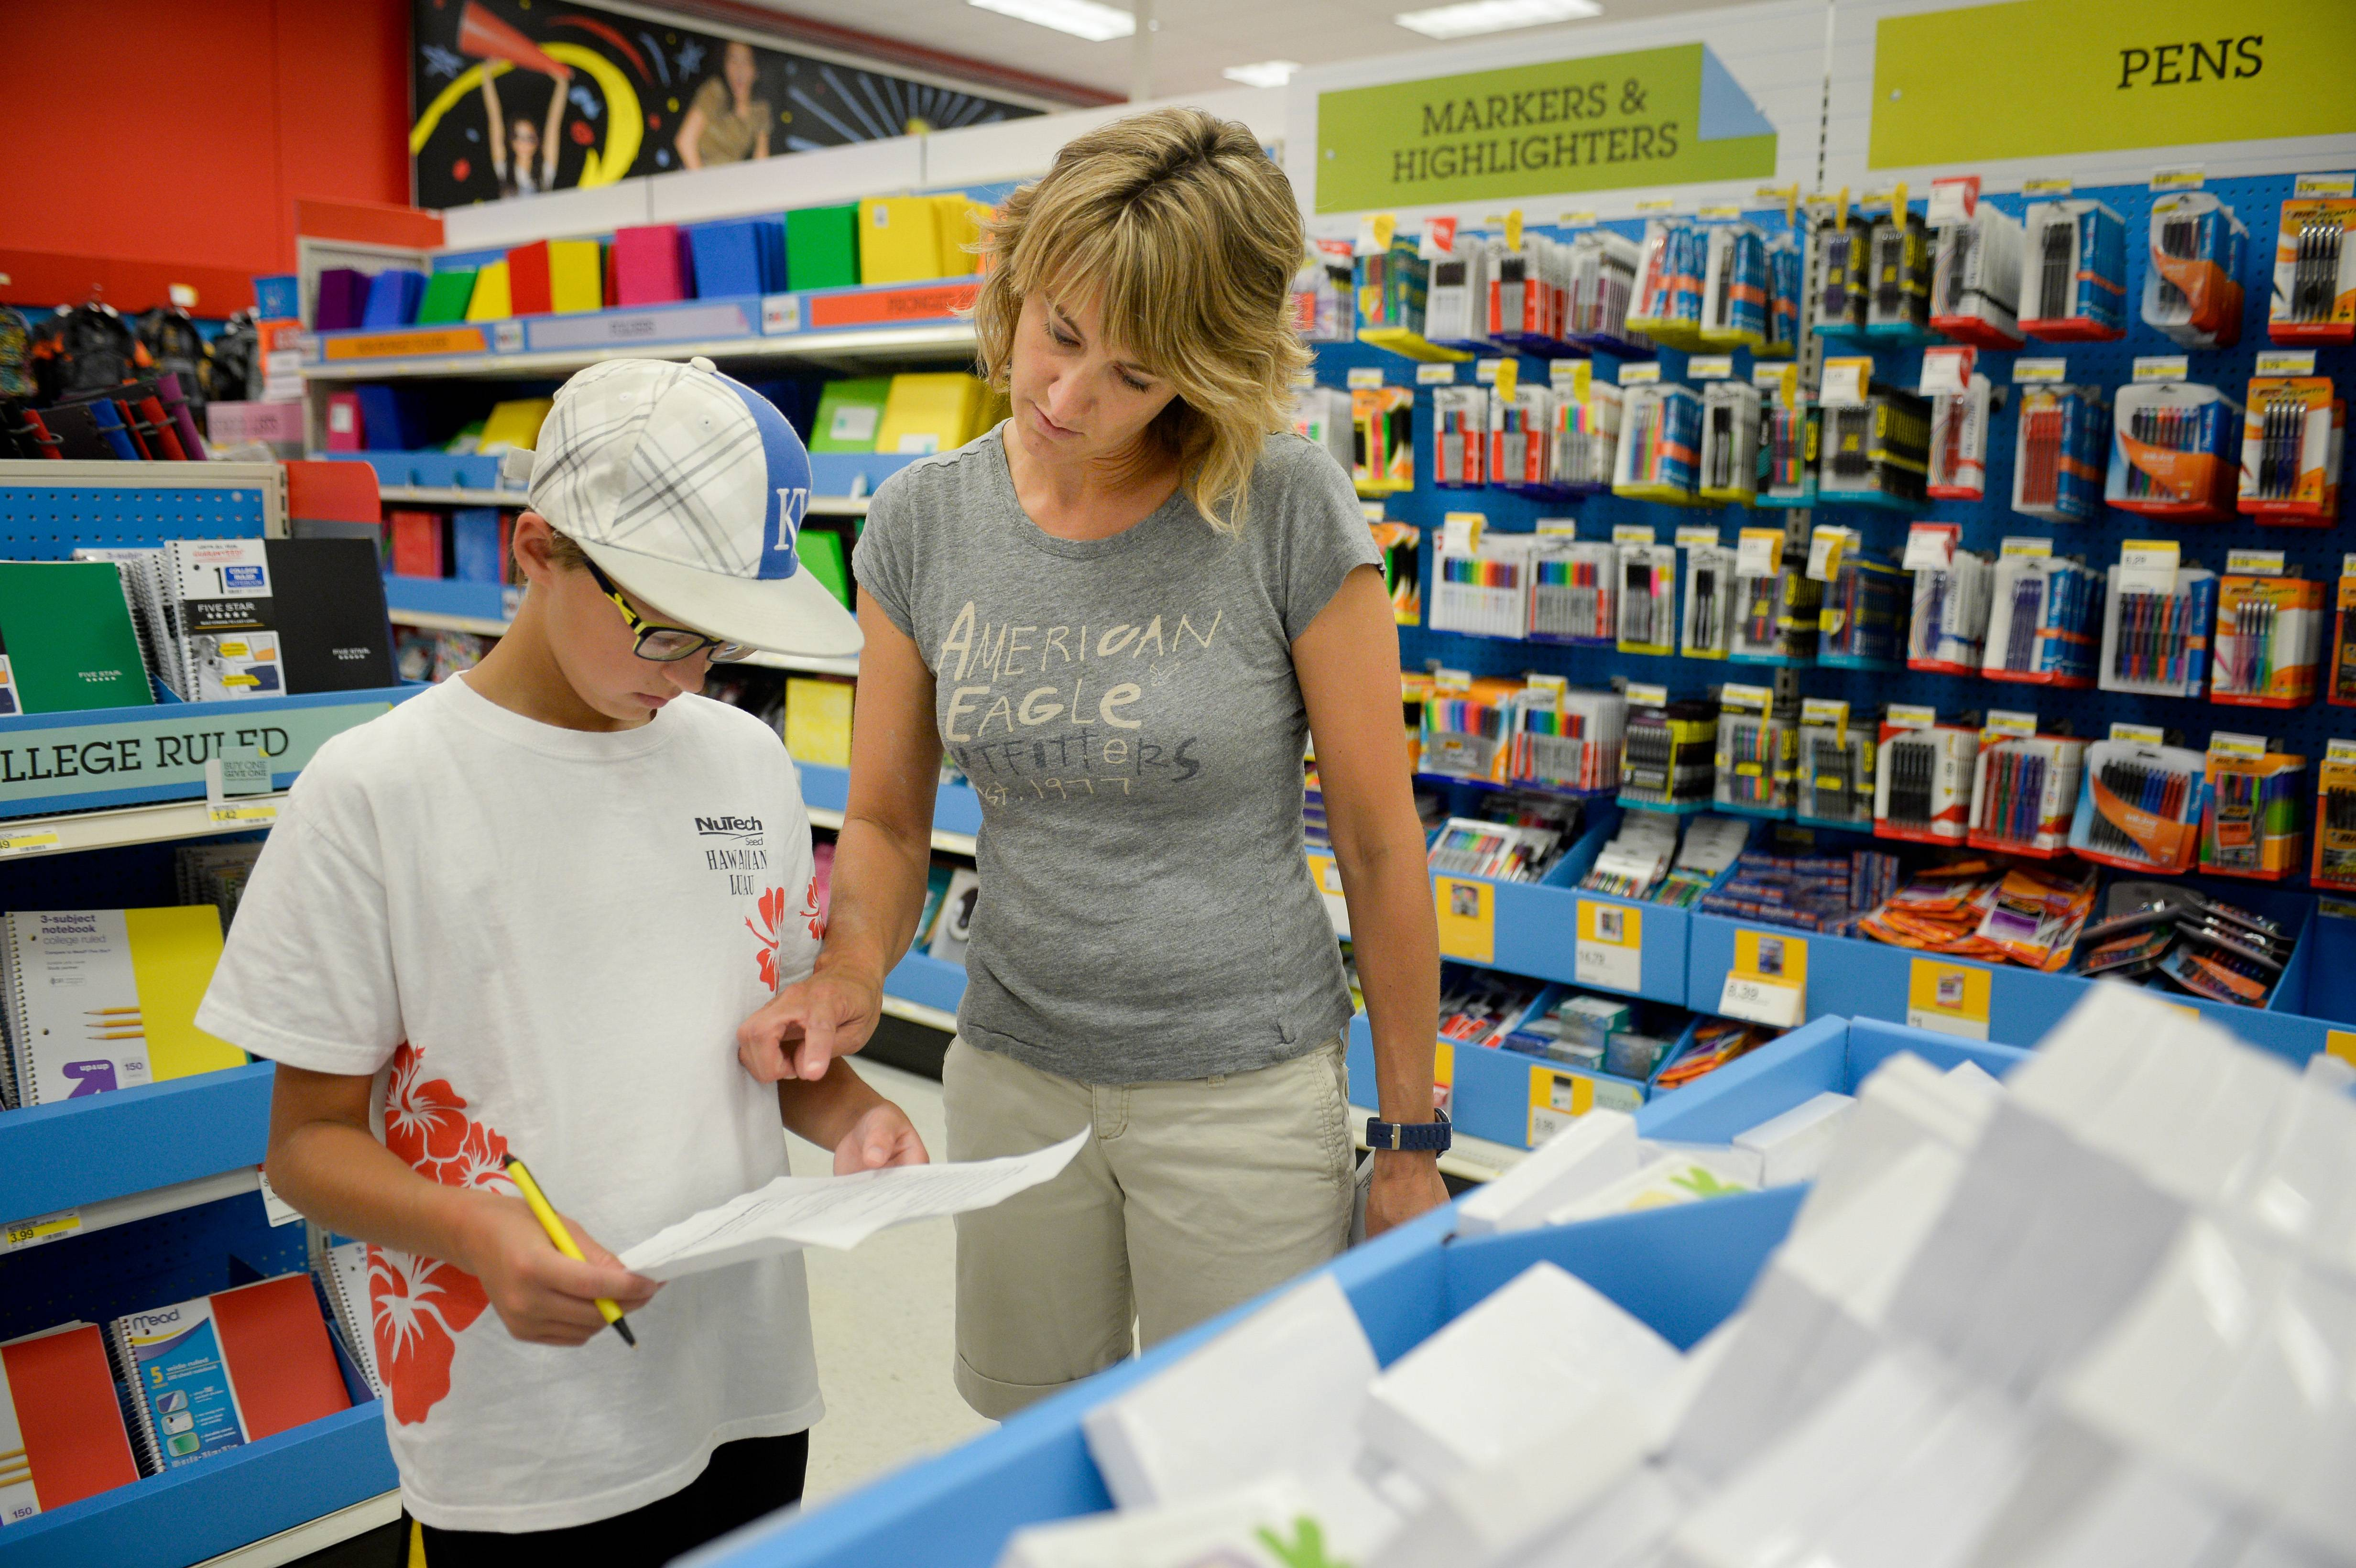 Jill Courtney, right, shops for school supplies for her sons, Will, left, and Reid, not seen, at a Target store in St. Joseph, Mo. This season, stores have focused even more on offering new services and apps to cater to increasingly time-starved smart-phone, savvy parents to help them save time and money for the annual shopping ritual.